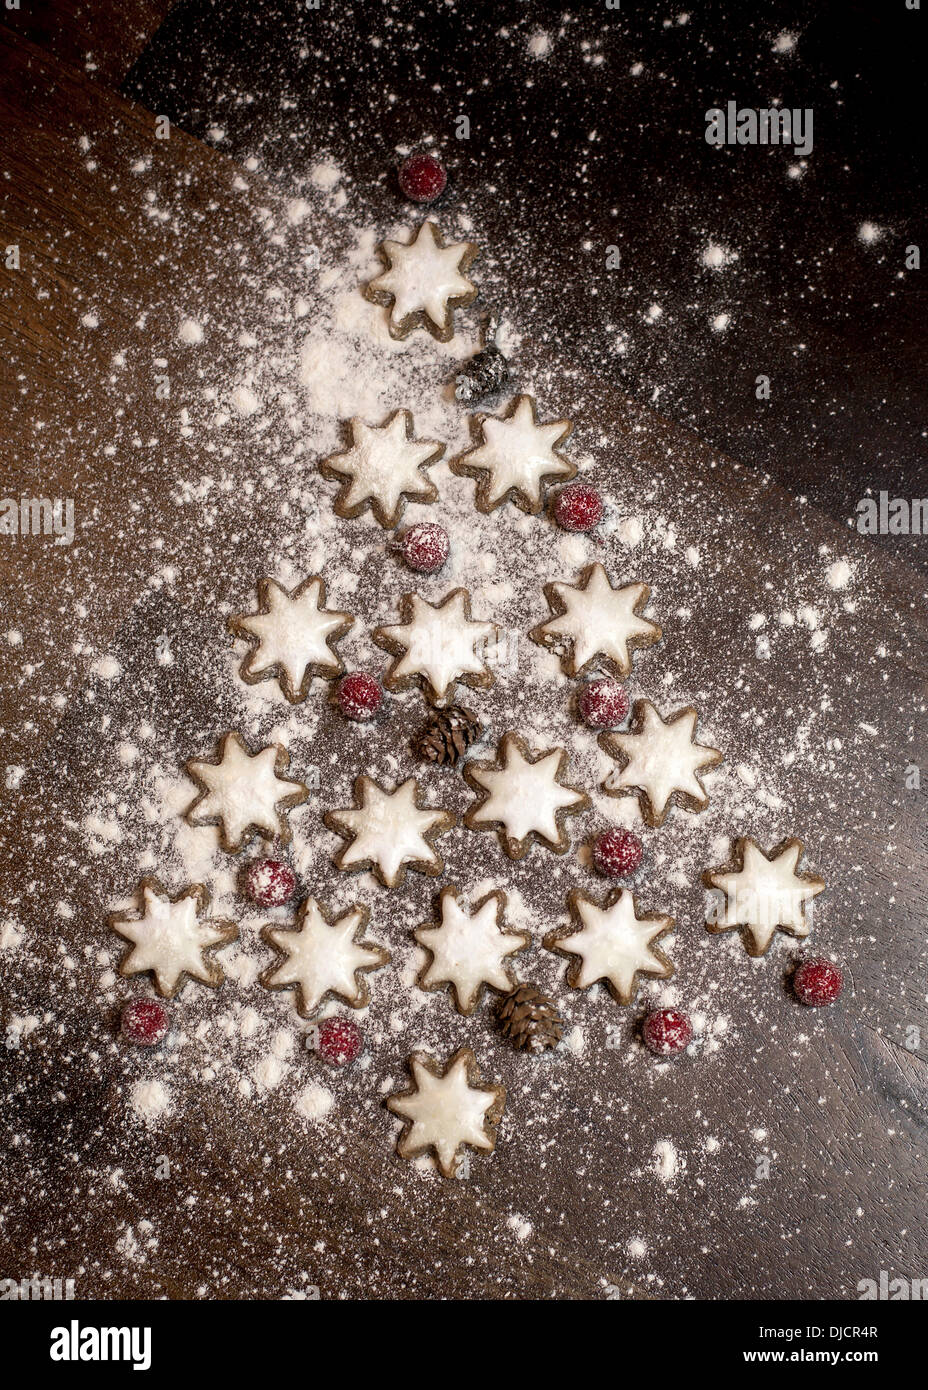 Christmas tree formed of star-shaped cinnamon cookies, red berries and fir cones on wooden table - Stock Image